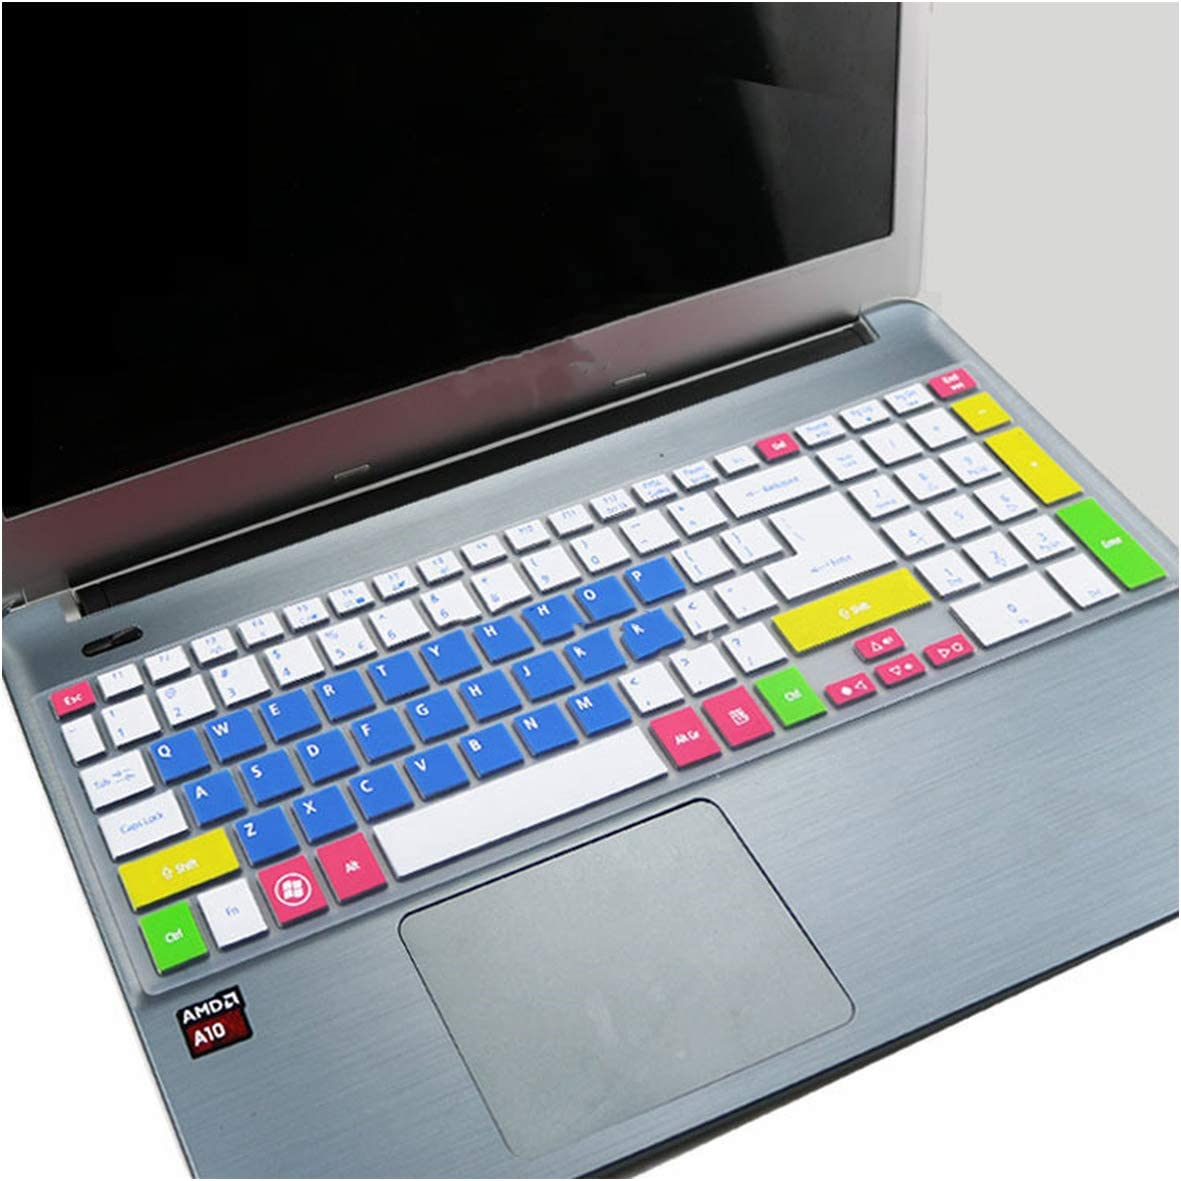 15.6 Inch Laptop Notebook Keyboard Cover Protective Film for Acer Aspire E1 522 570 532 5830 5755 V3 E5 511 571G 551G 572,1